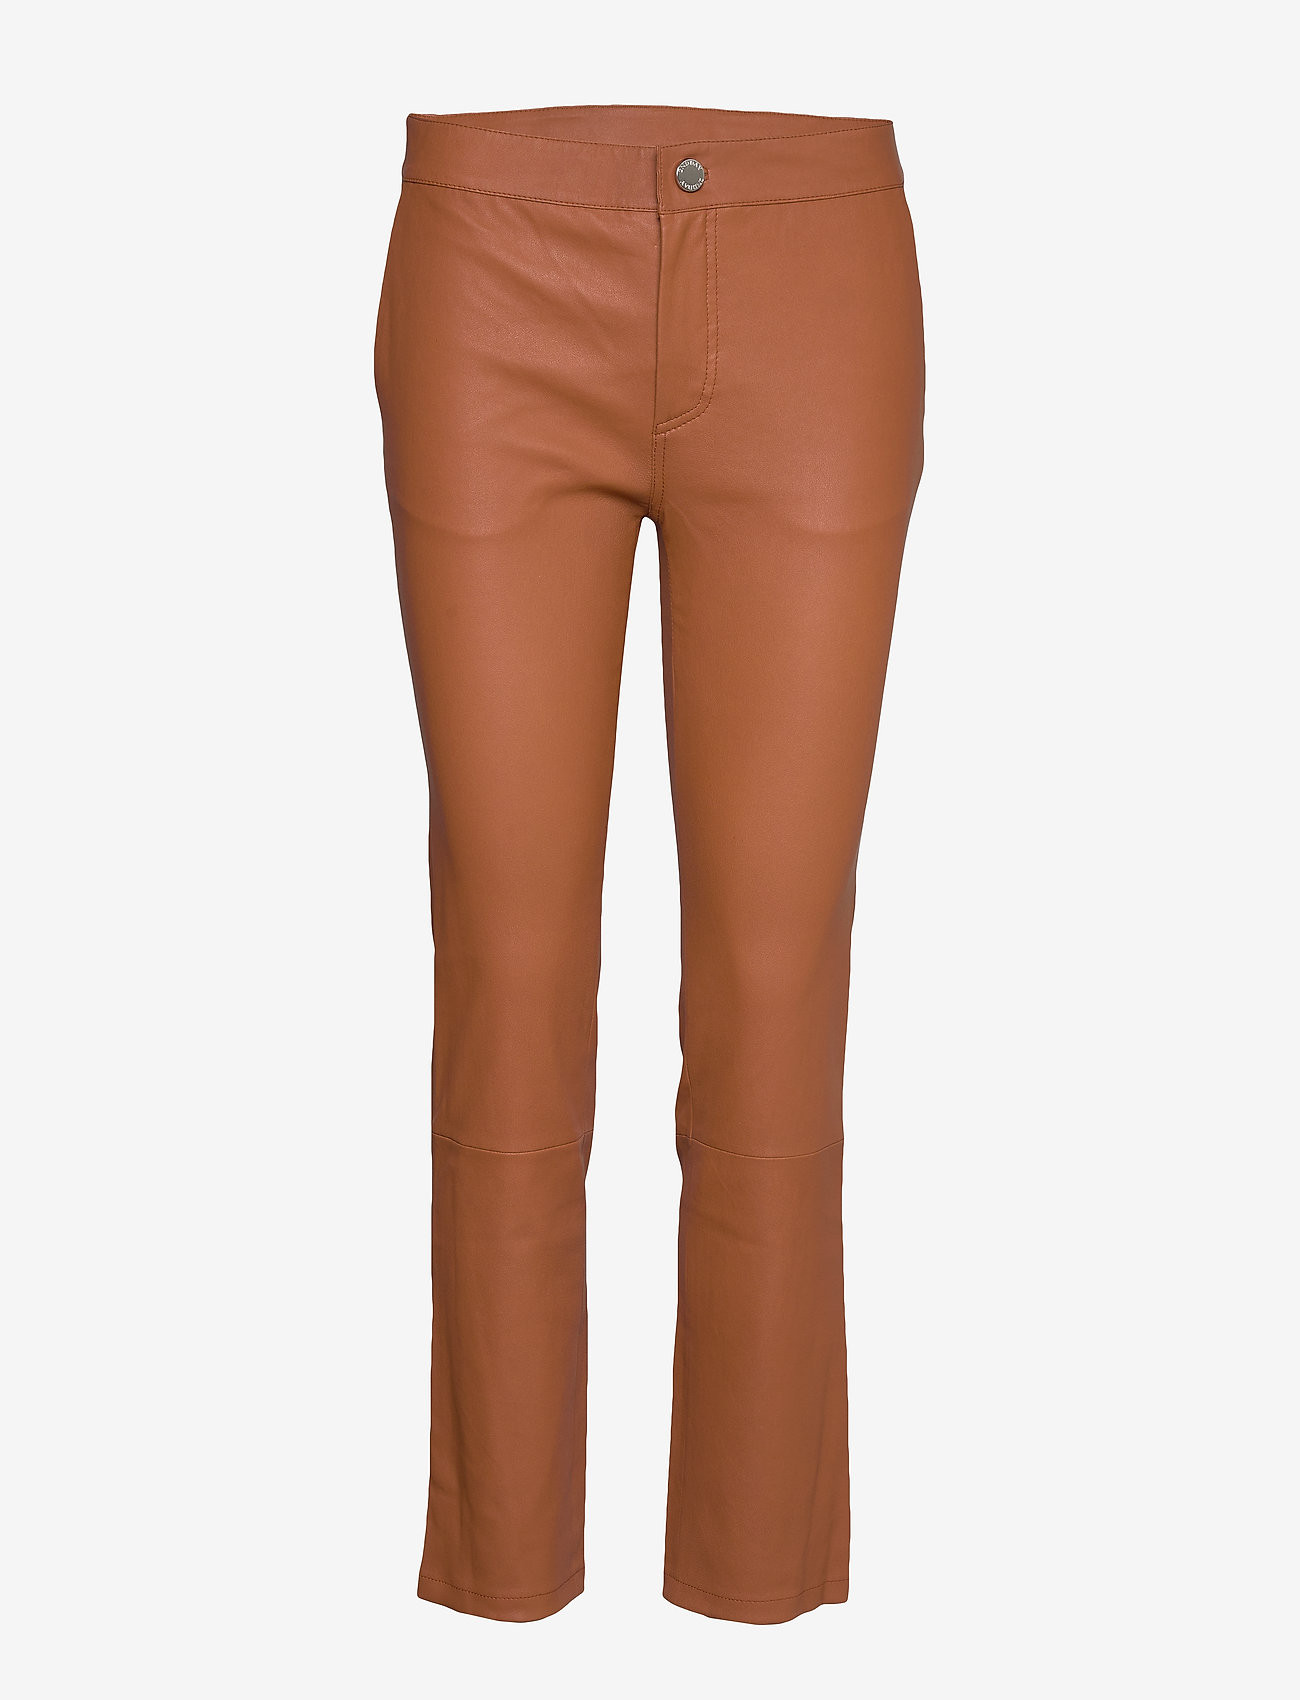 2NDDAY - 2ND Leya - leather trousers - mocha bisque - 0